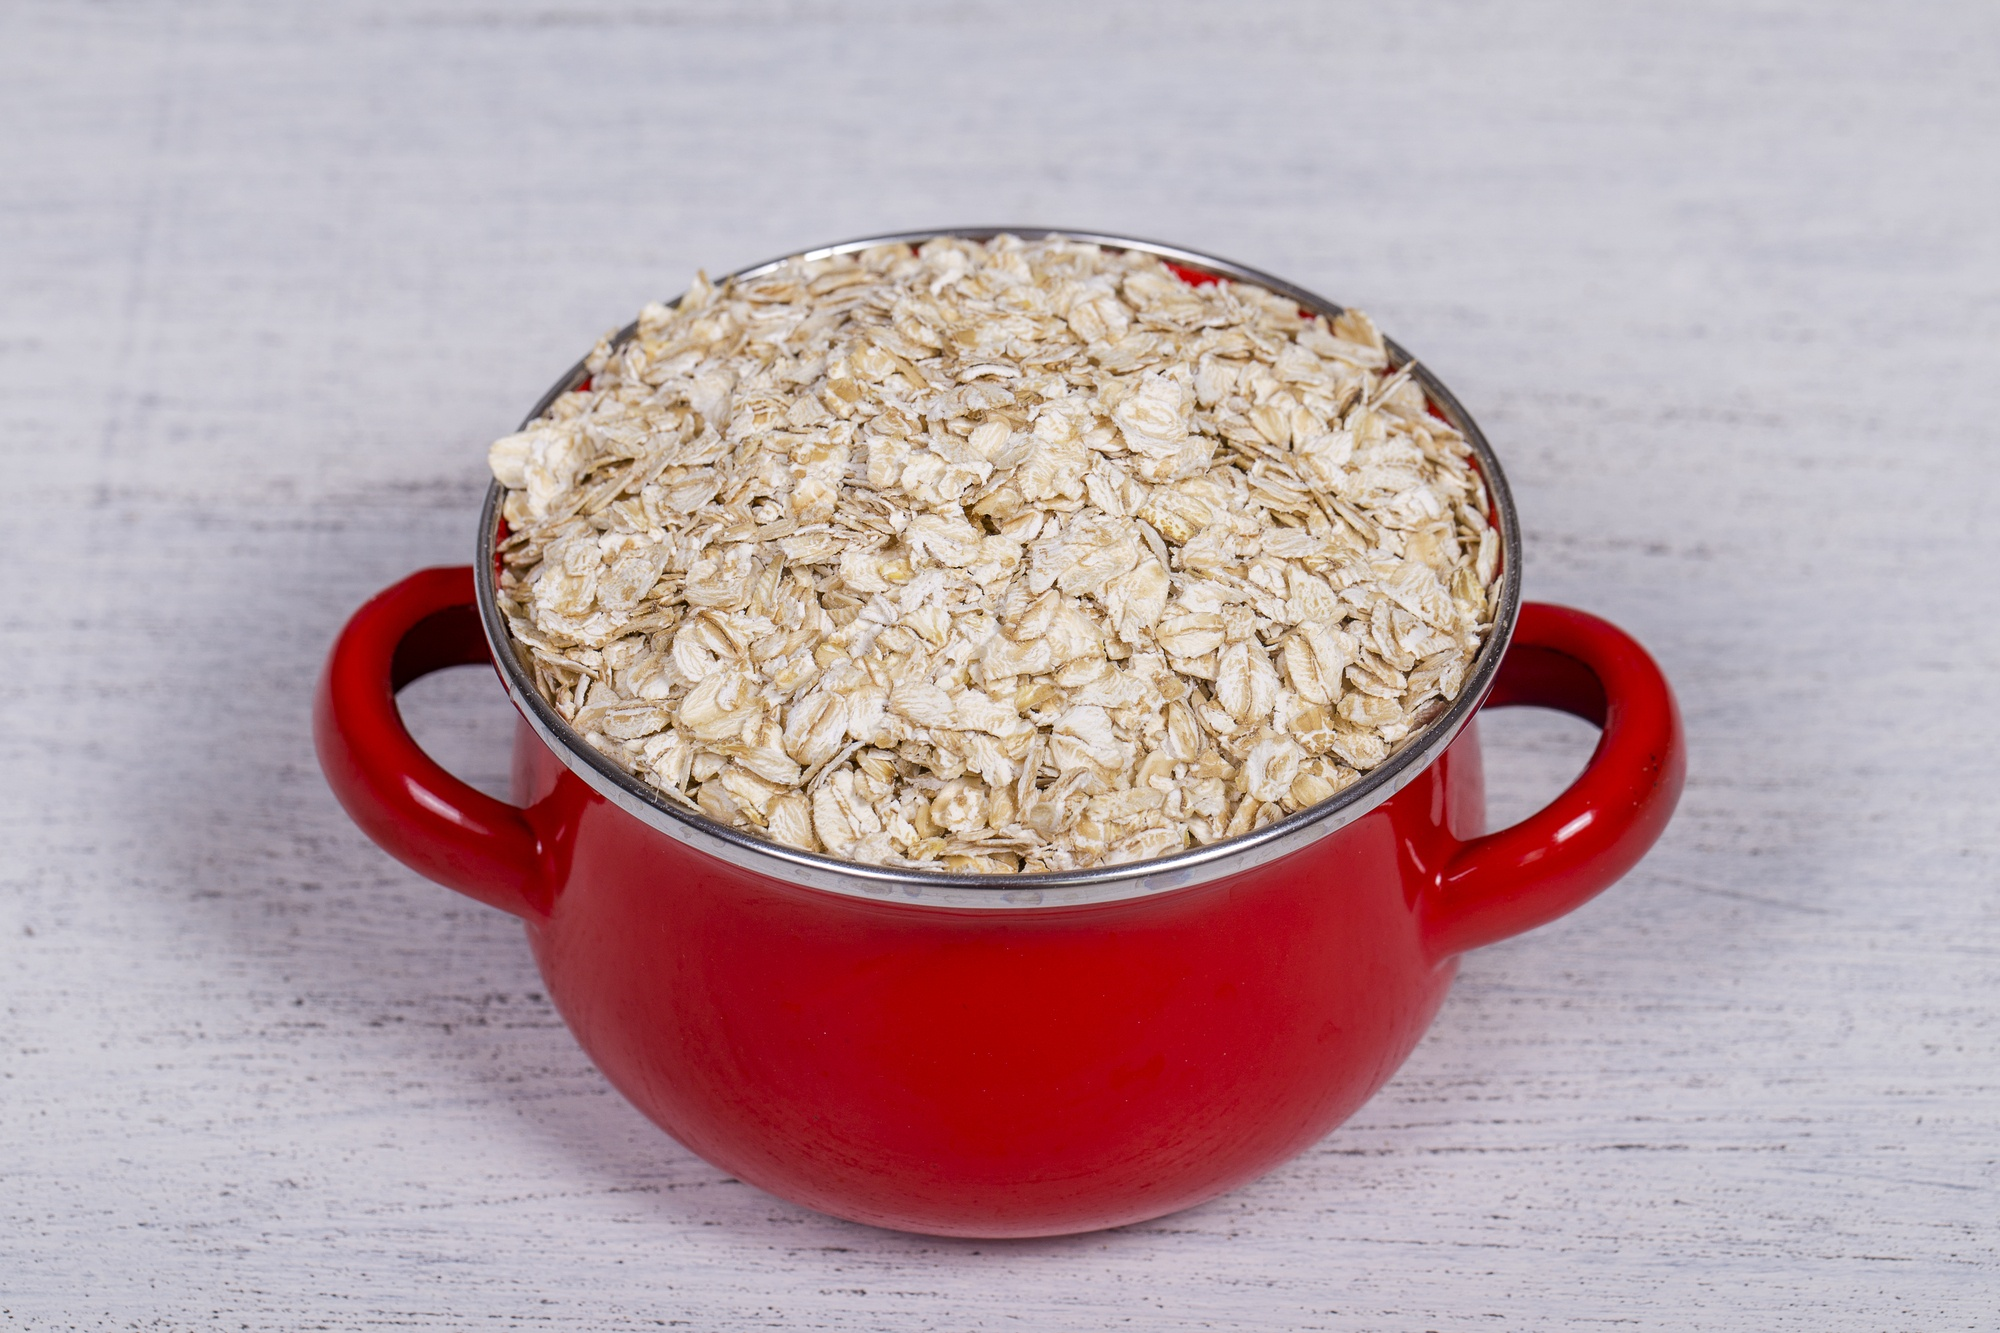 Increased Systolic Blood Pressure: The Oatmeal Analogy